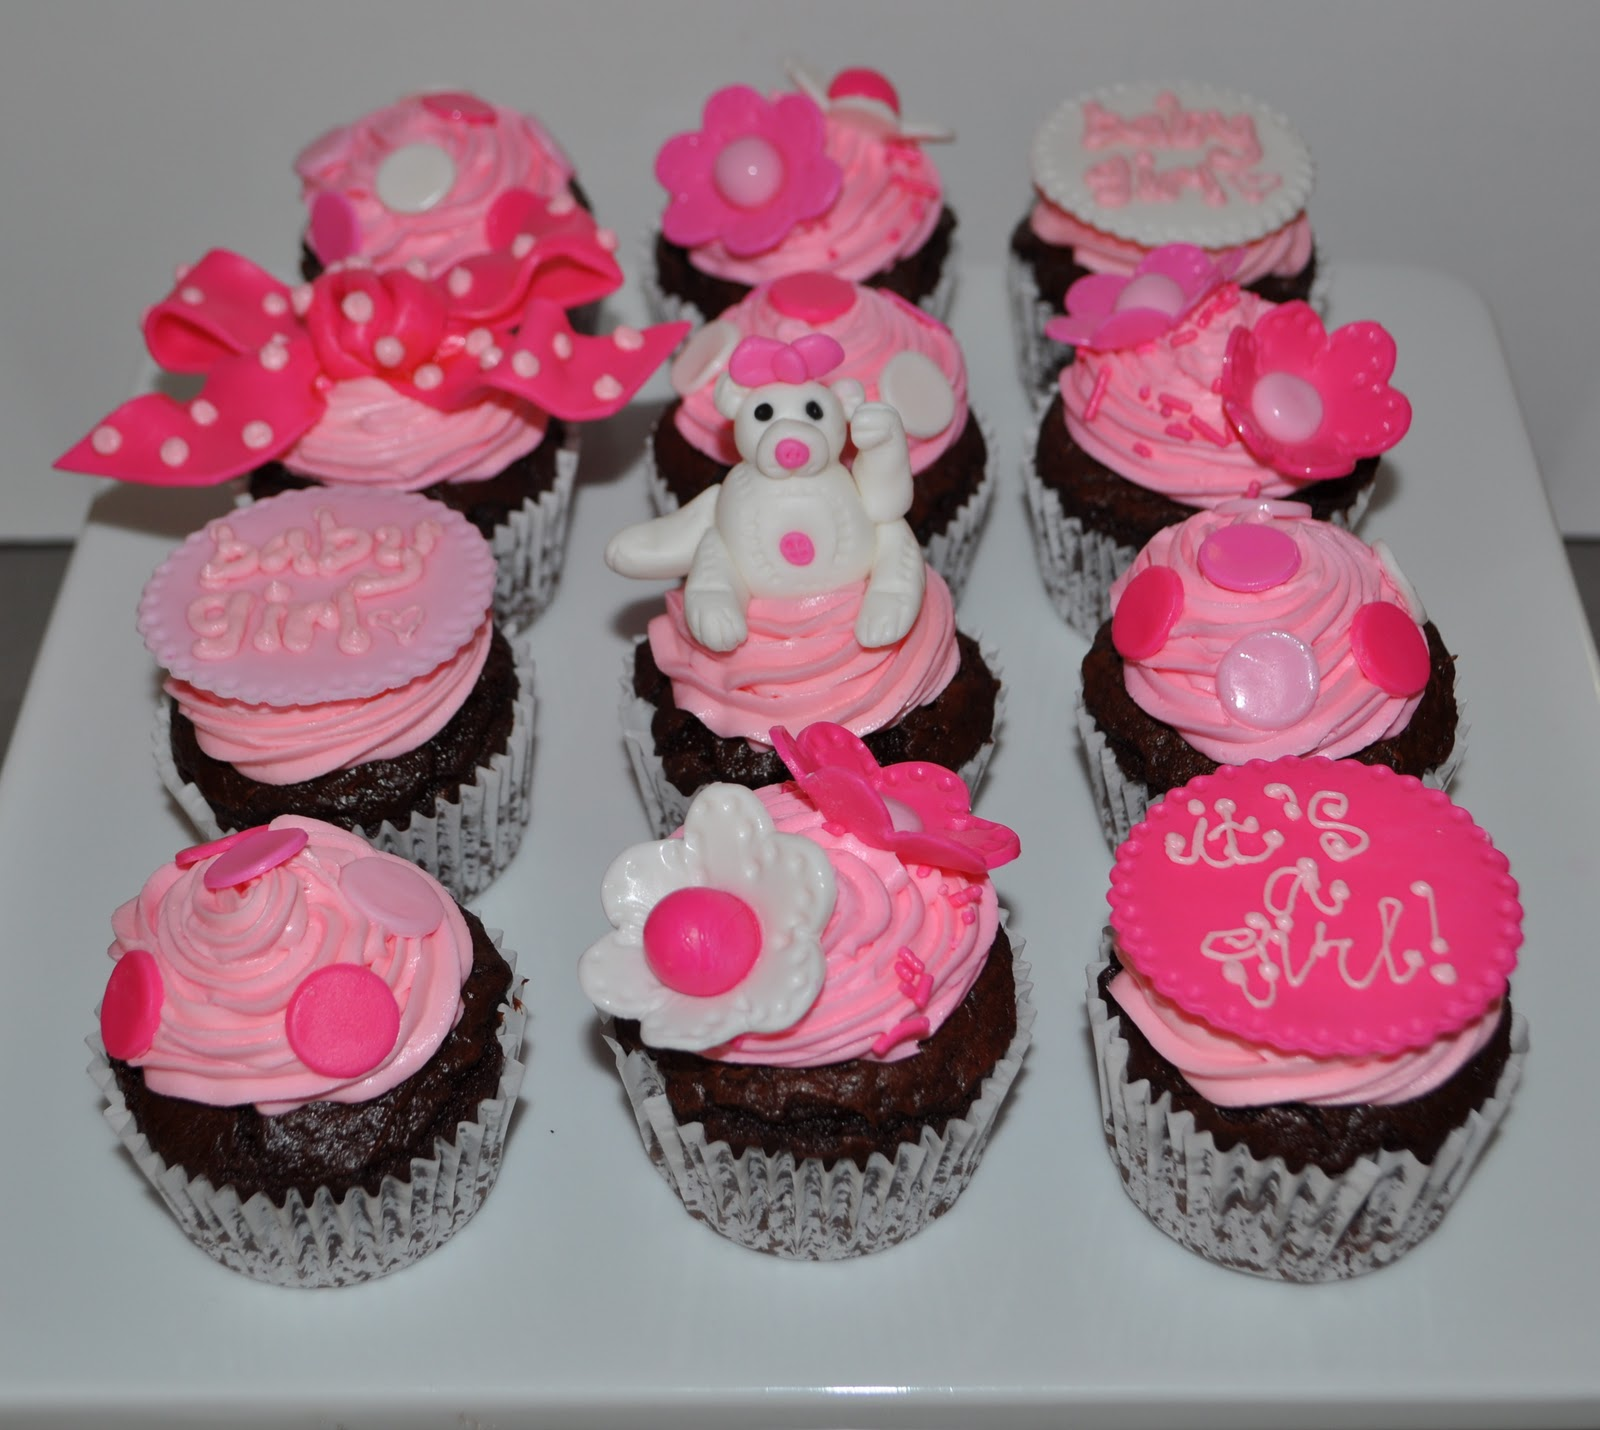 pinked out cupcakes for an office party baby shower it 39 s a